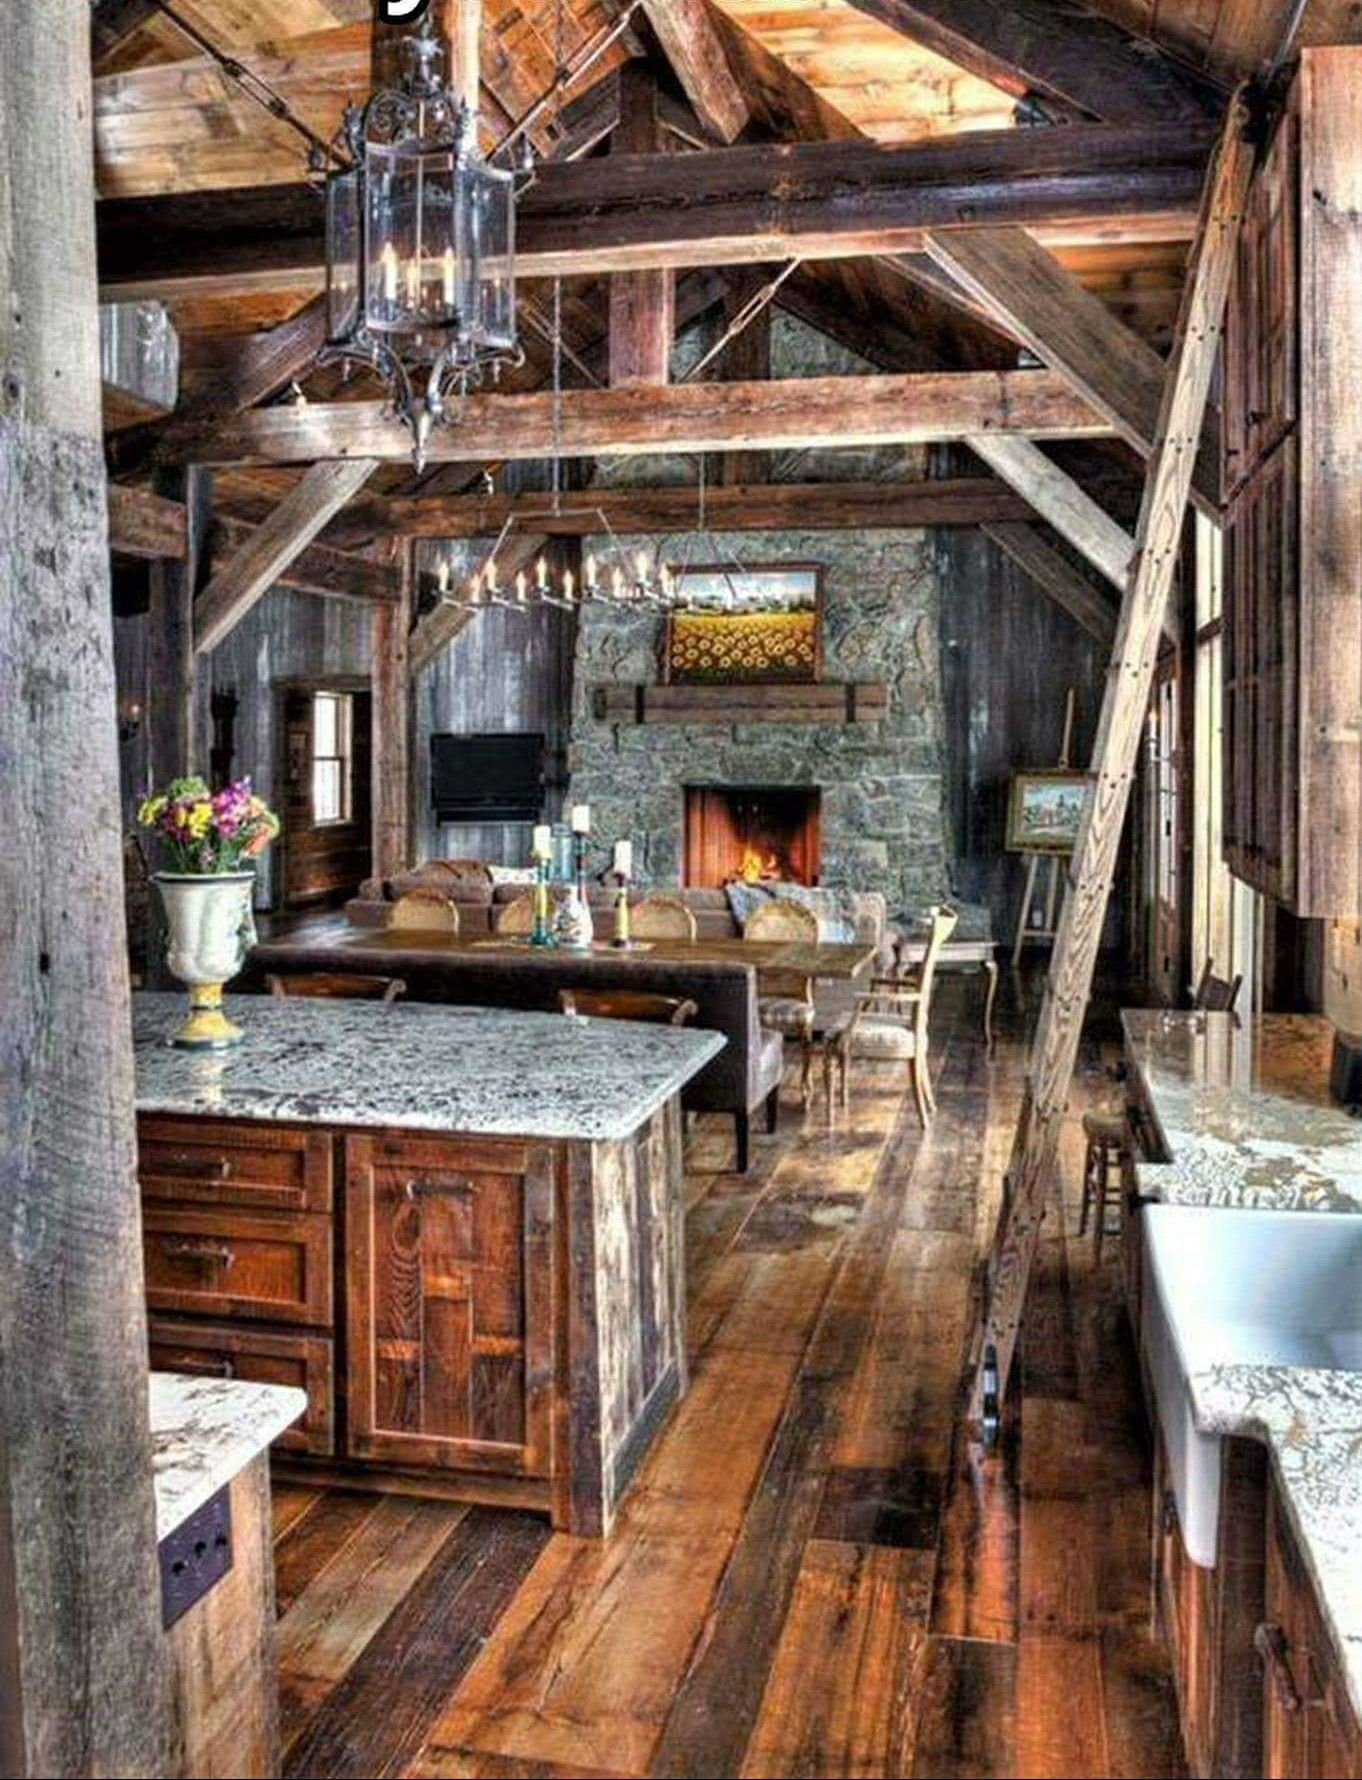 cabin kitchen decor inexpensive cabinets pin by mercy krause on house kitchens apple rustic log homes barn island forest